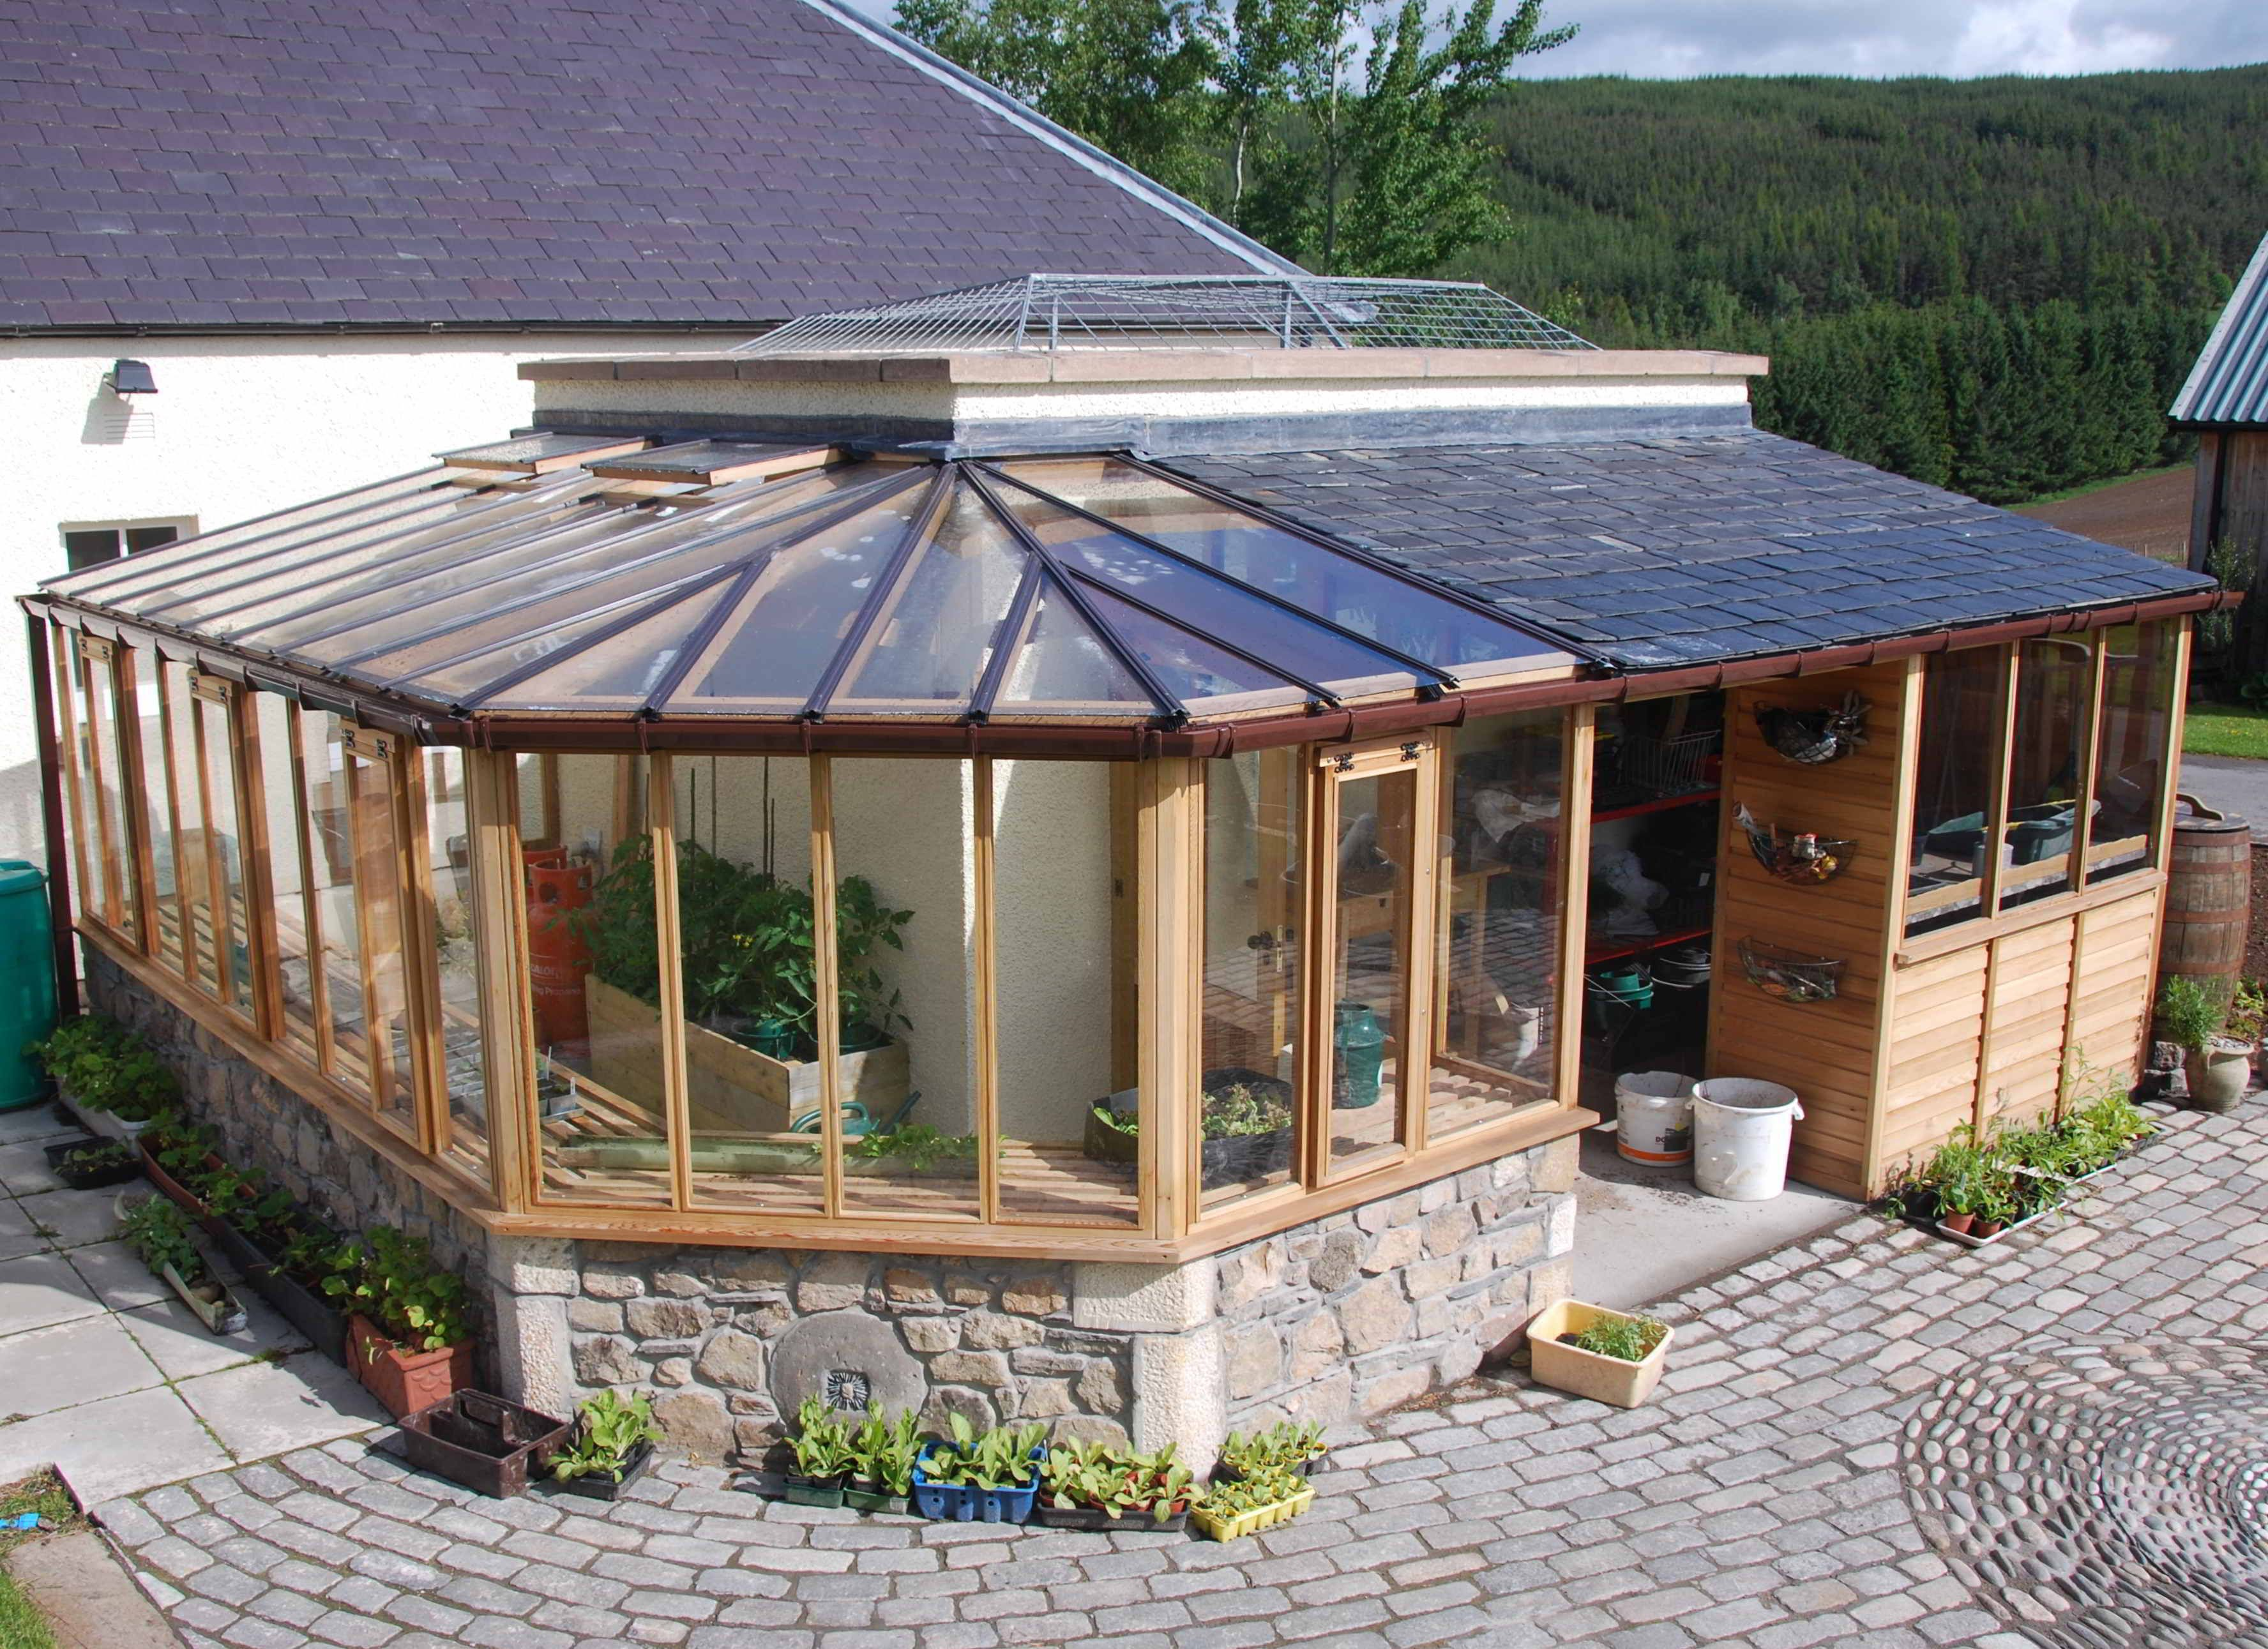 Backyard Greenhouse Ideas the purpose of greenhouses is to allow gardeners to grow a wider variety of plants and flowers no matter the growing zone and to extend the growing season Inspiring Decorating Modern Greenhouse Design